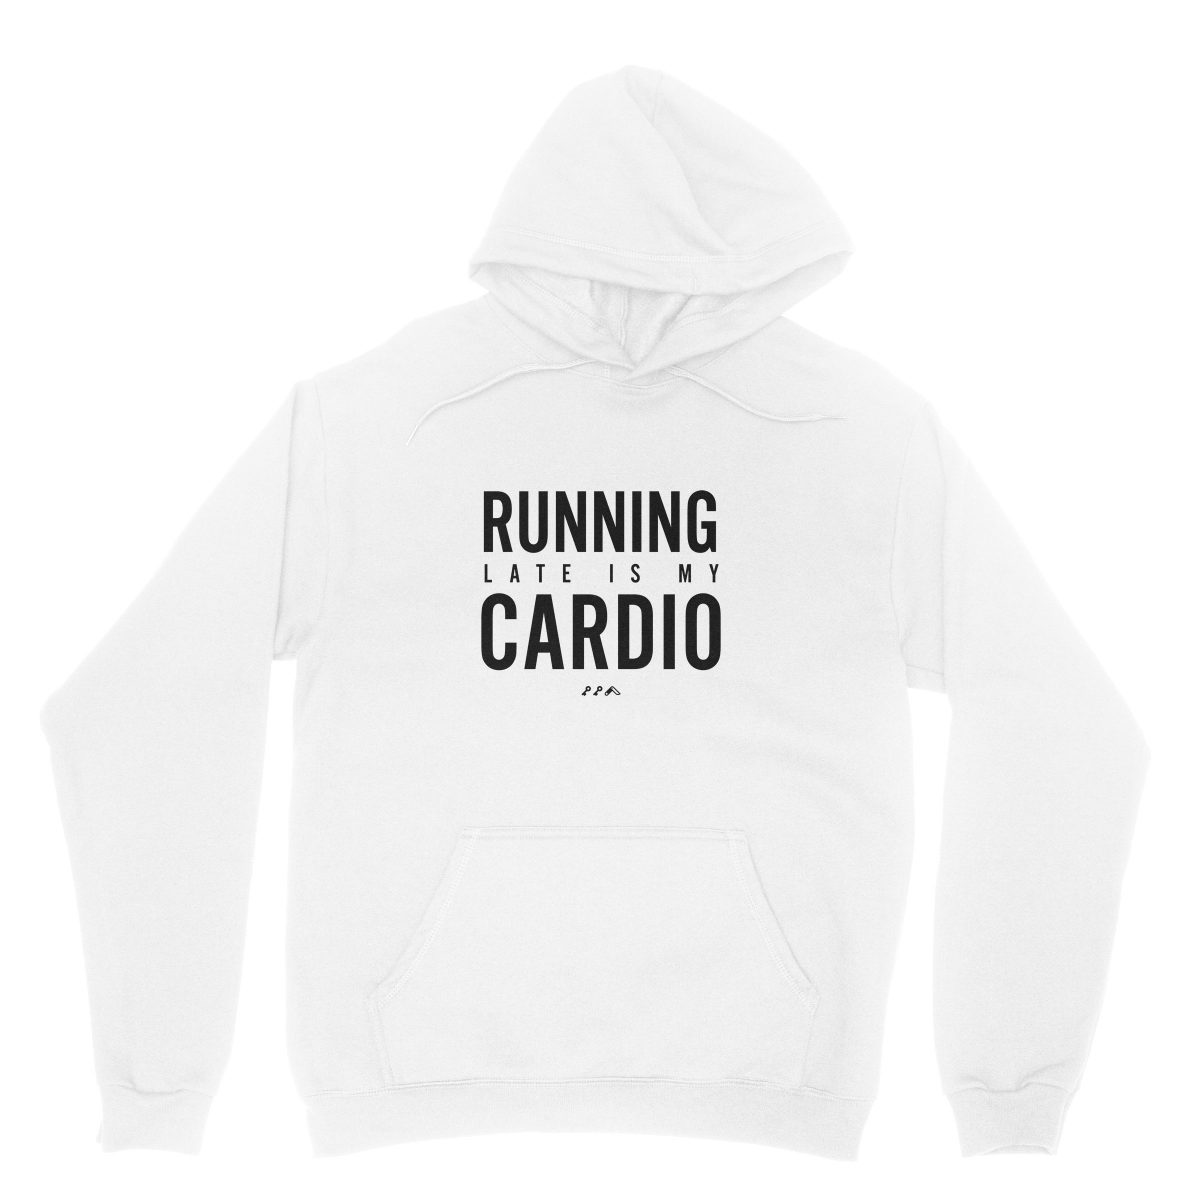 RUNNING LATE IS MY CARDIO funny workout hoodies in white by kikicutt